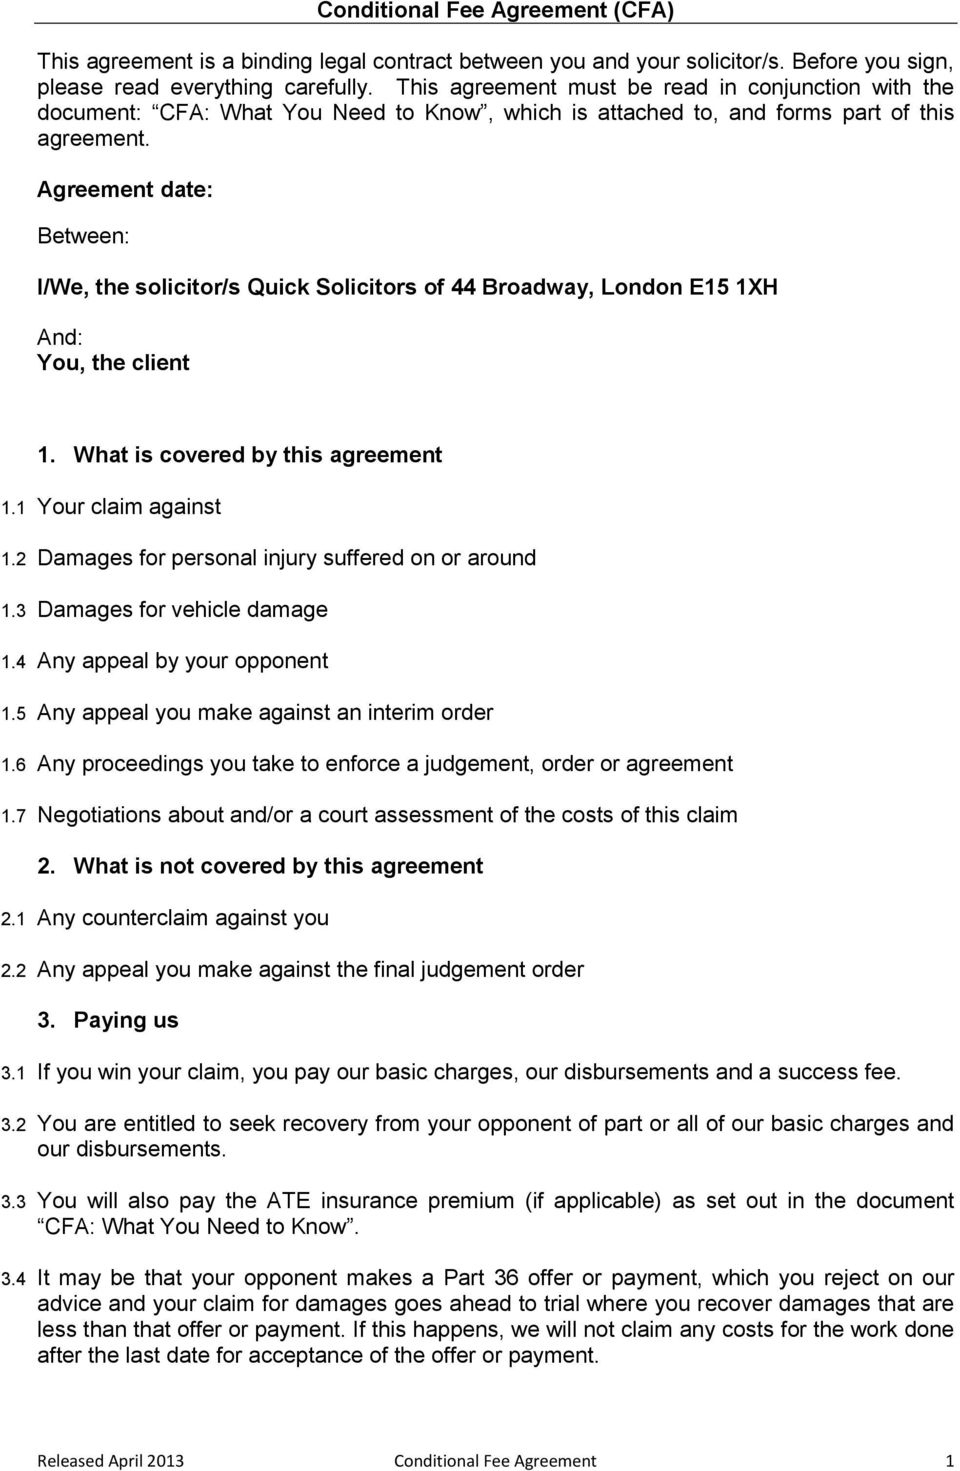 Agreement date: Between: I/We, the solicitor/s Quick Solicitors of 44 Broadway, London E15 1XH And: You, the client 1. What is covered by this agreement 1.1 Your claim against 1.